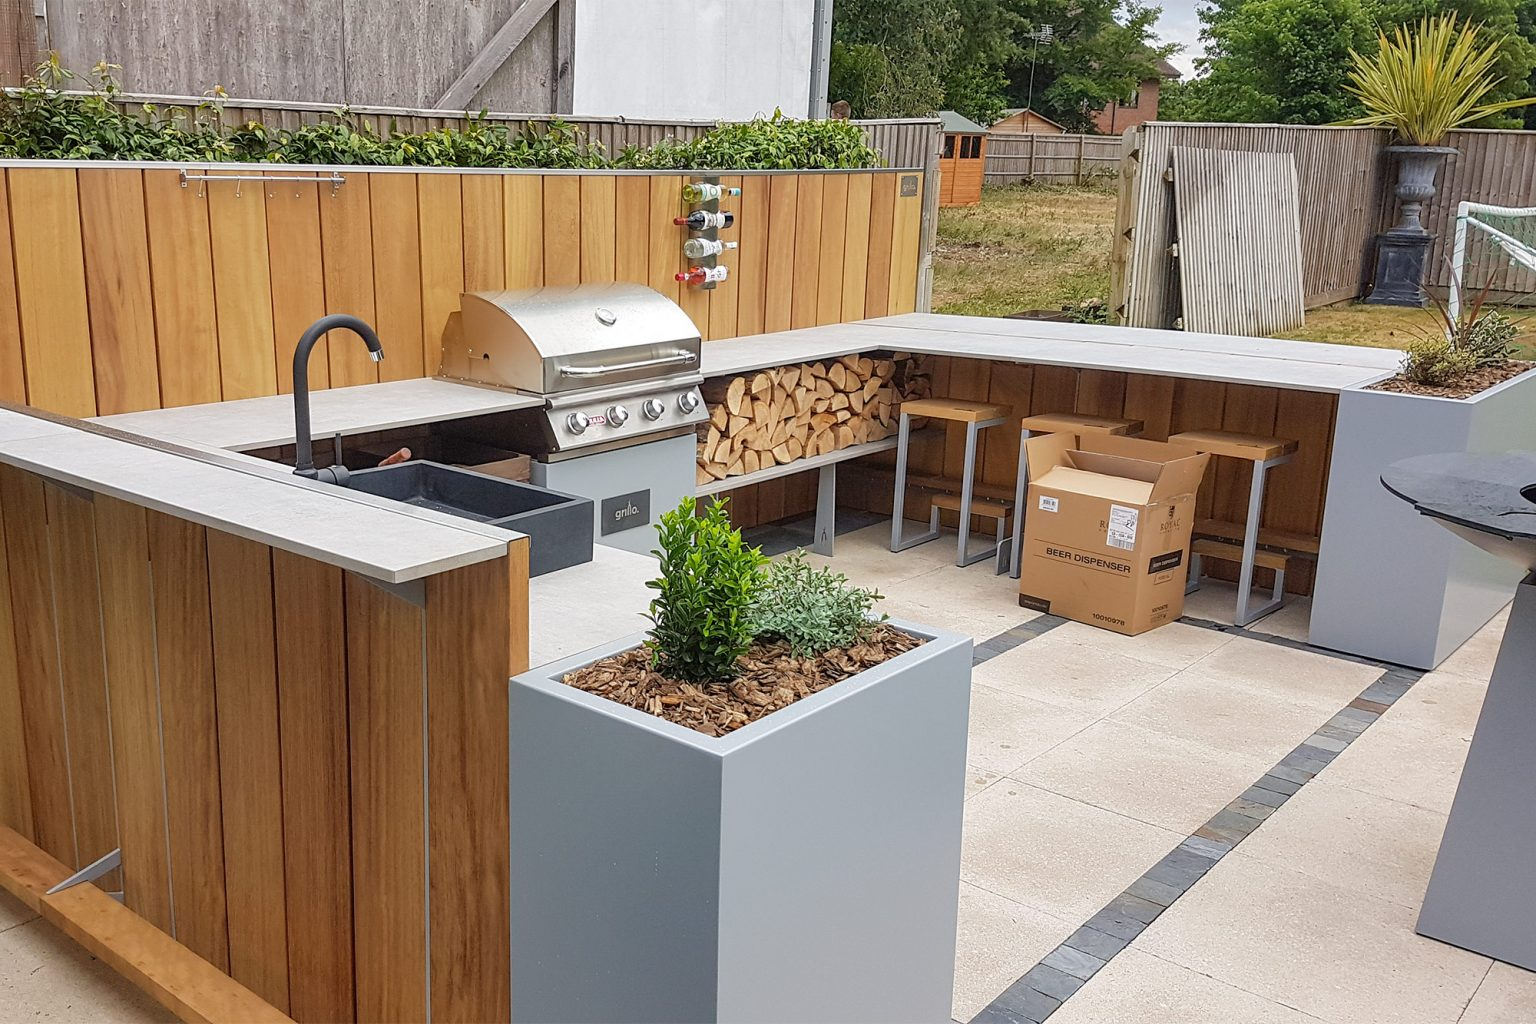 U shaped Grillo kitchen anvil with pub like standing bar, planters, anvil, sink, Gas BBQ, seating area, logs